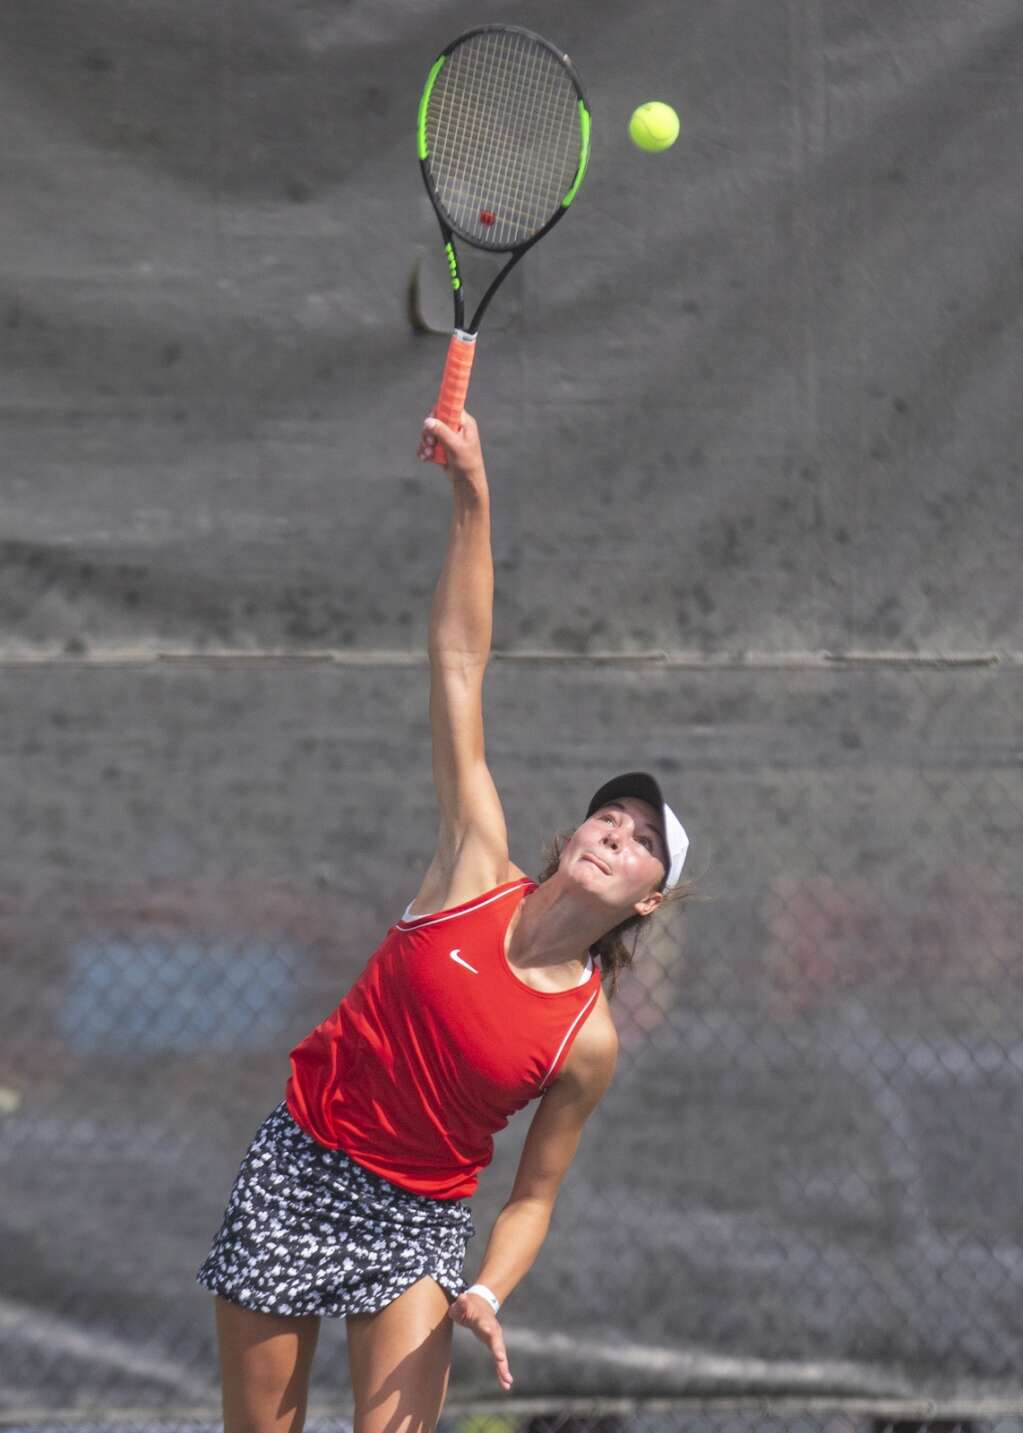 Park City High School's Reagan Harrison serves the ball during her third singles matchup against Provo High School's Sally Otterstrom at the Liberty Park tennis complex as part of the UHSAA 5A girls tennis championships Thursday morning, Oct. 7, 2021. (Tanzi Propst/Park Record)